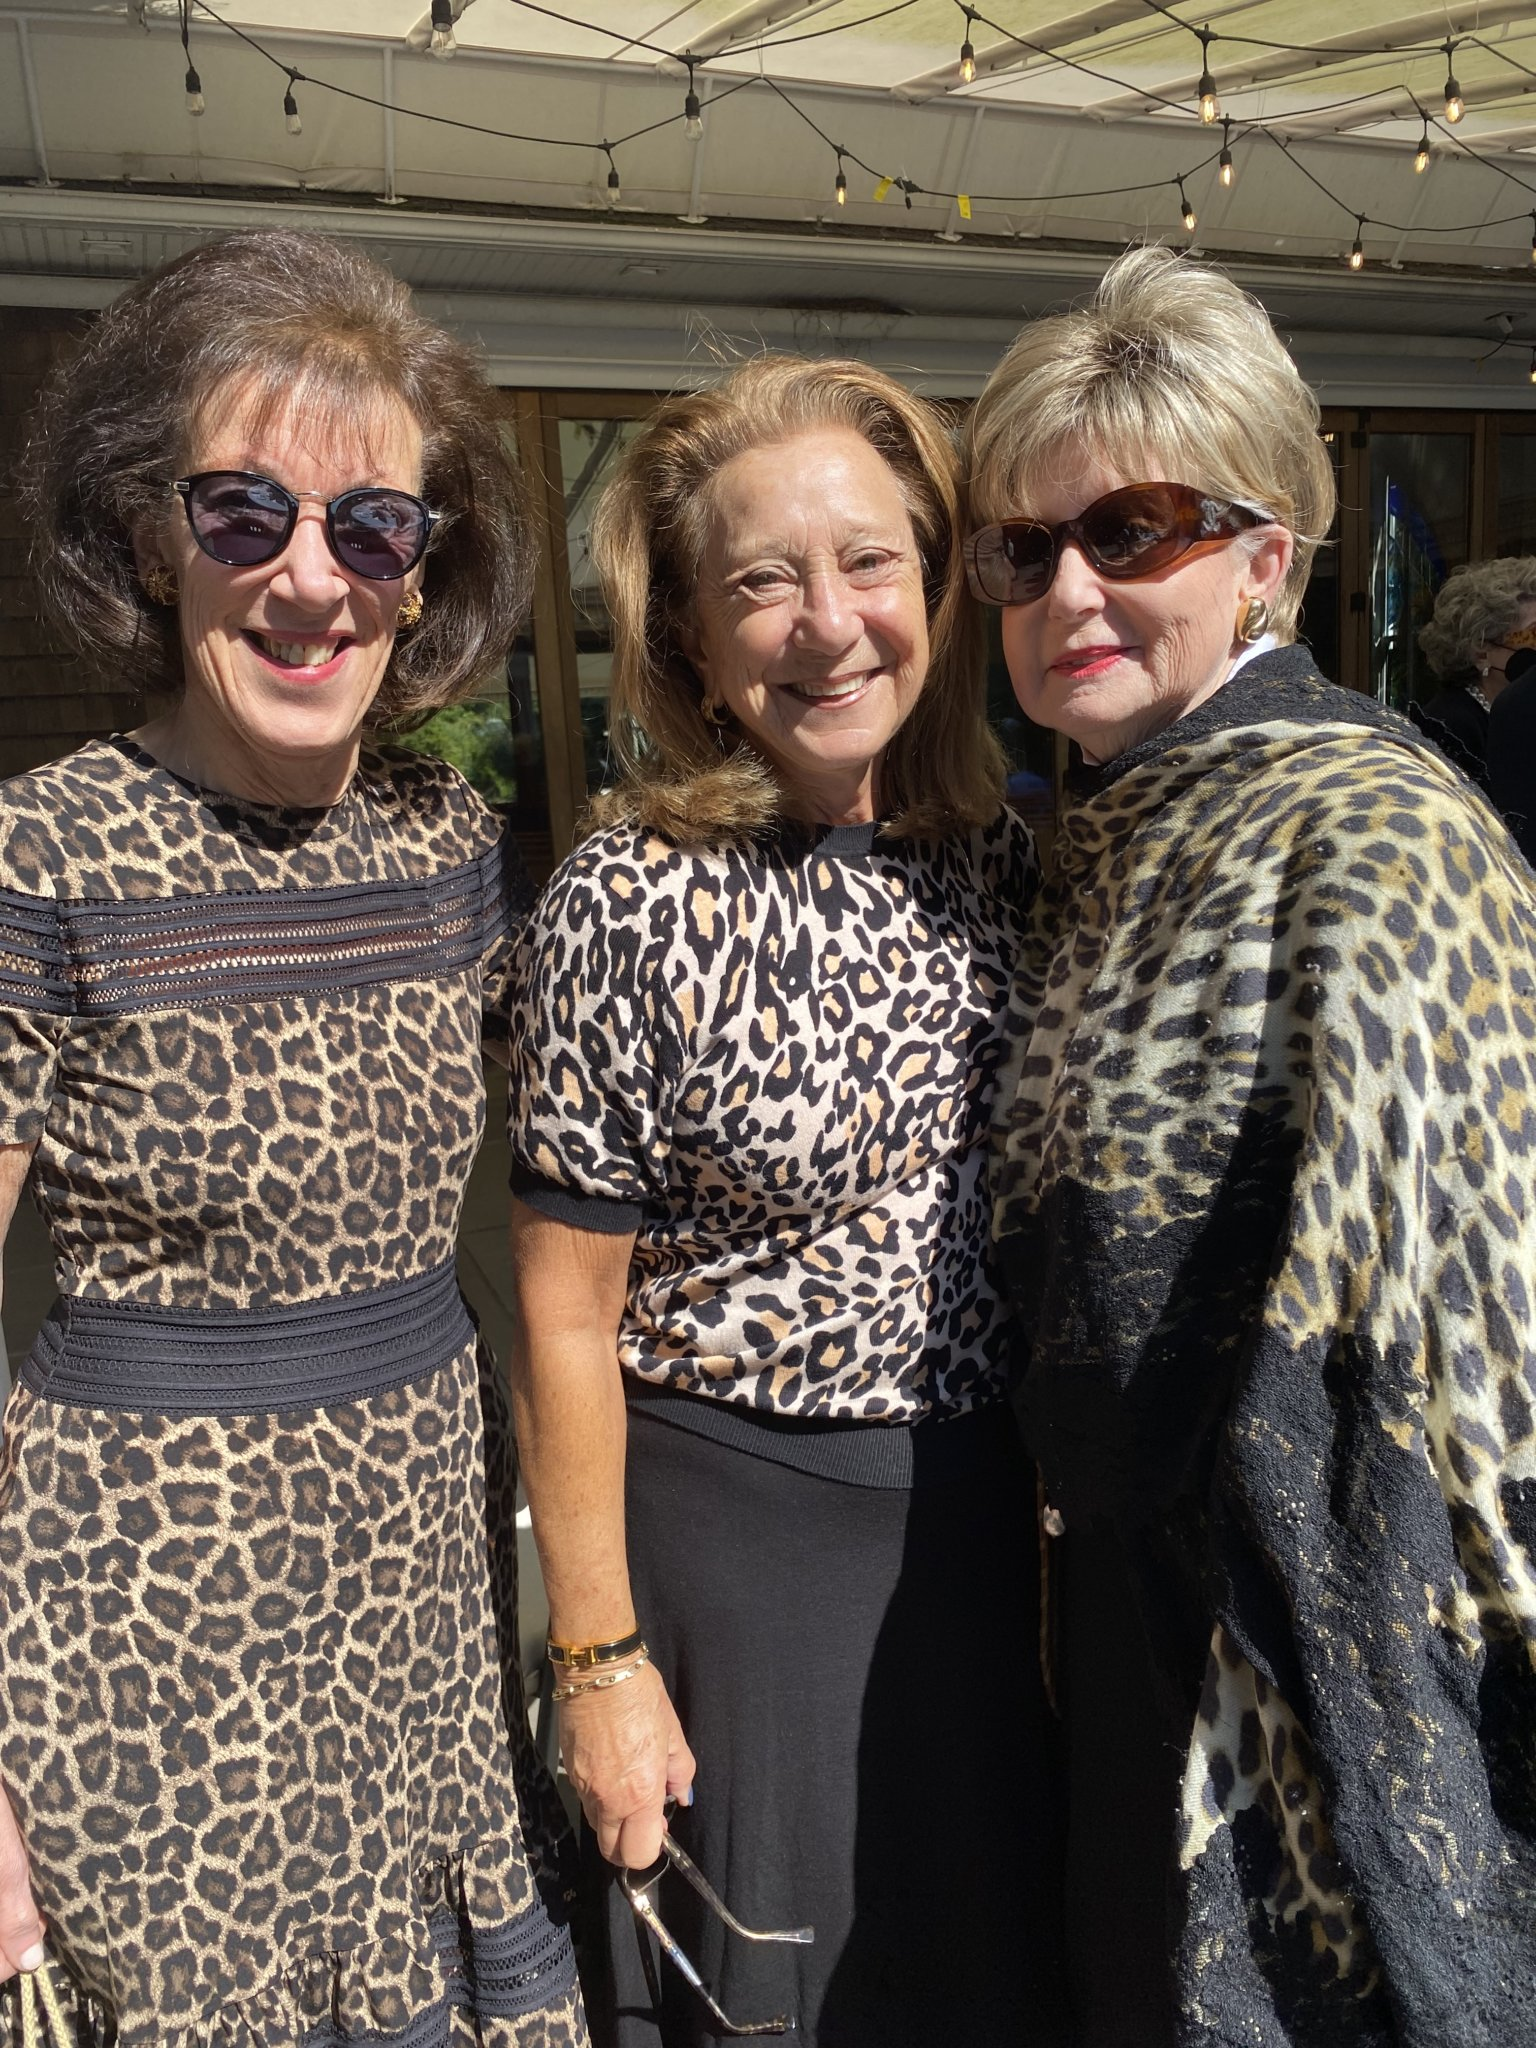 It's the season of the leopard and three friends — Sandy Cahn, Connie Rubin and Janet Mittler — unknown to each other, pulled a similar look from the closets. A trend has begun!